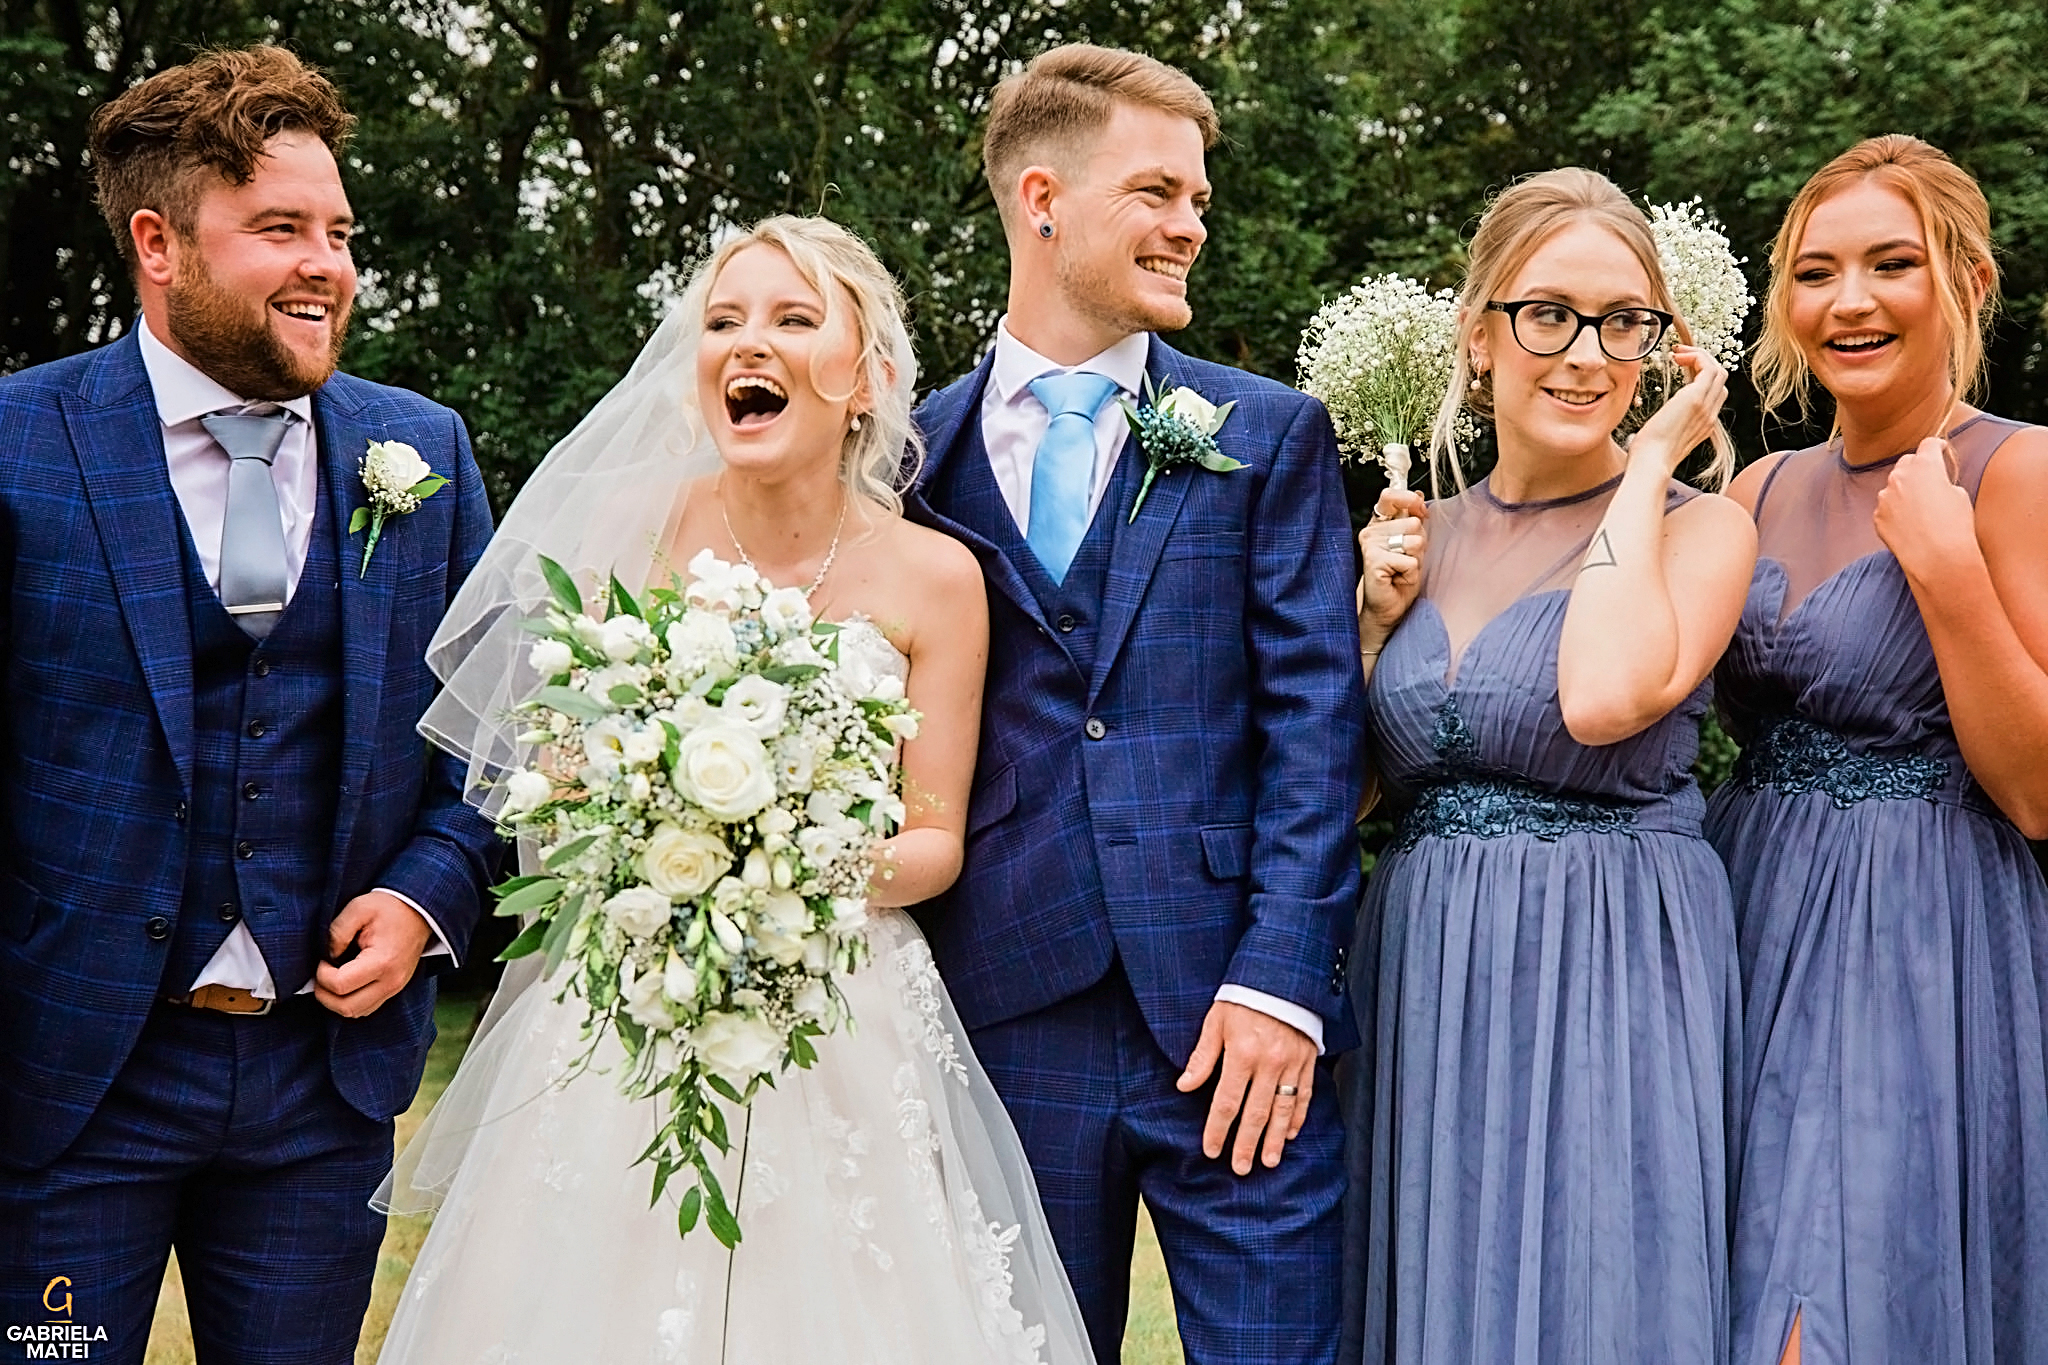 Bride cracks up laughing during group photos at wedding